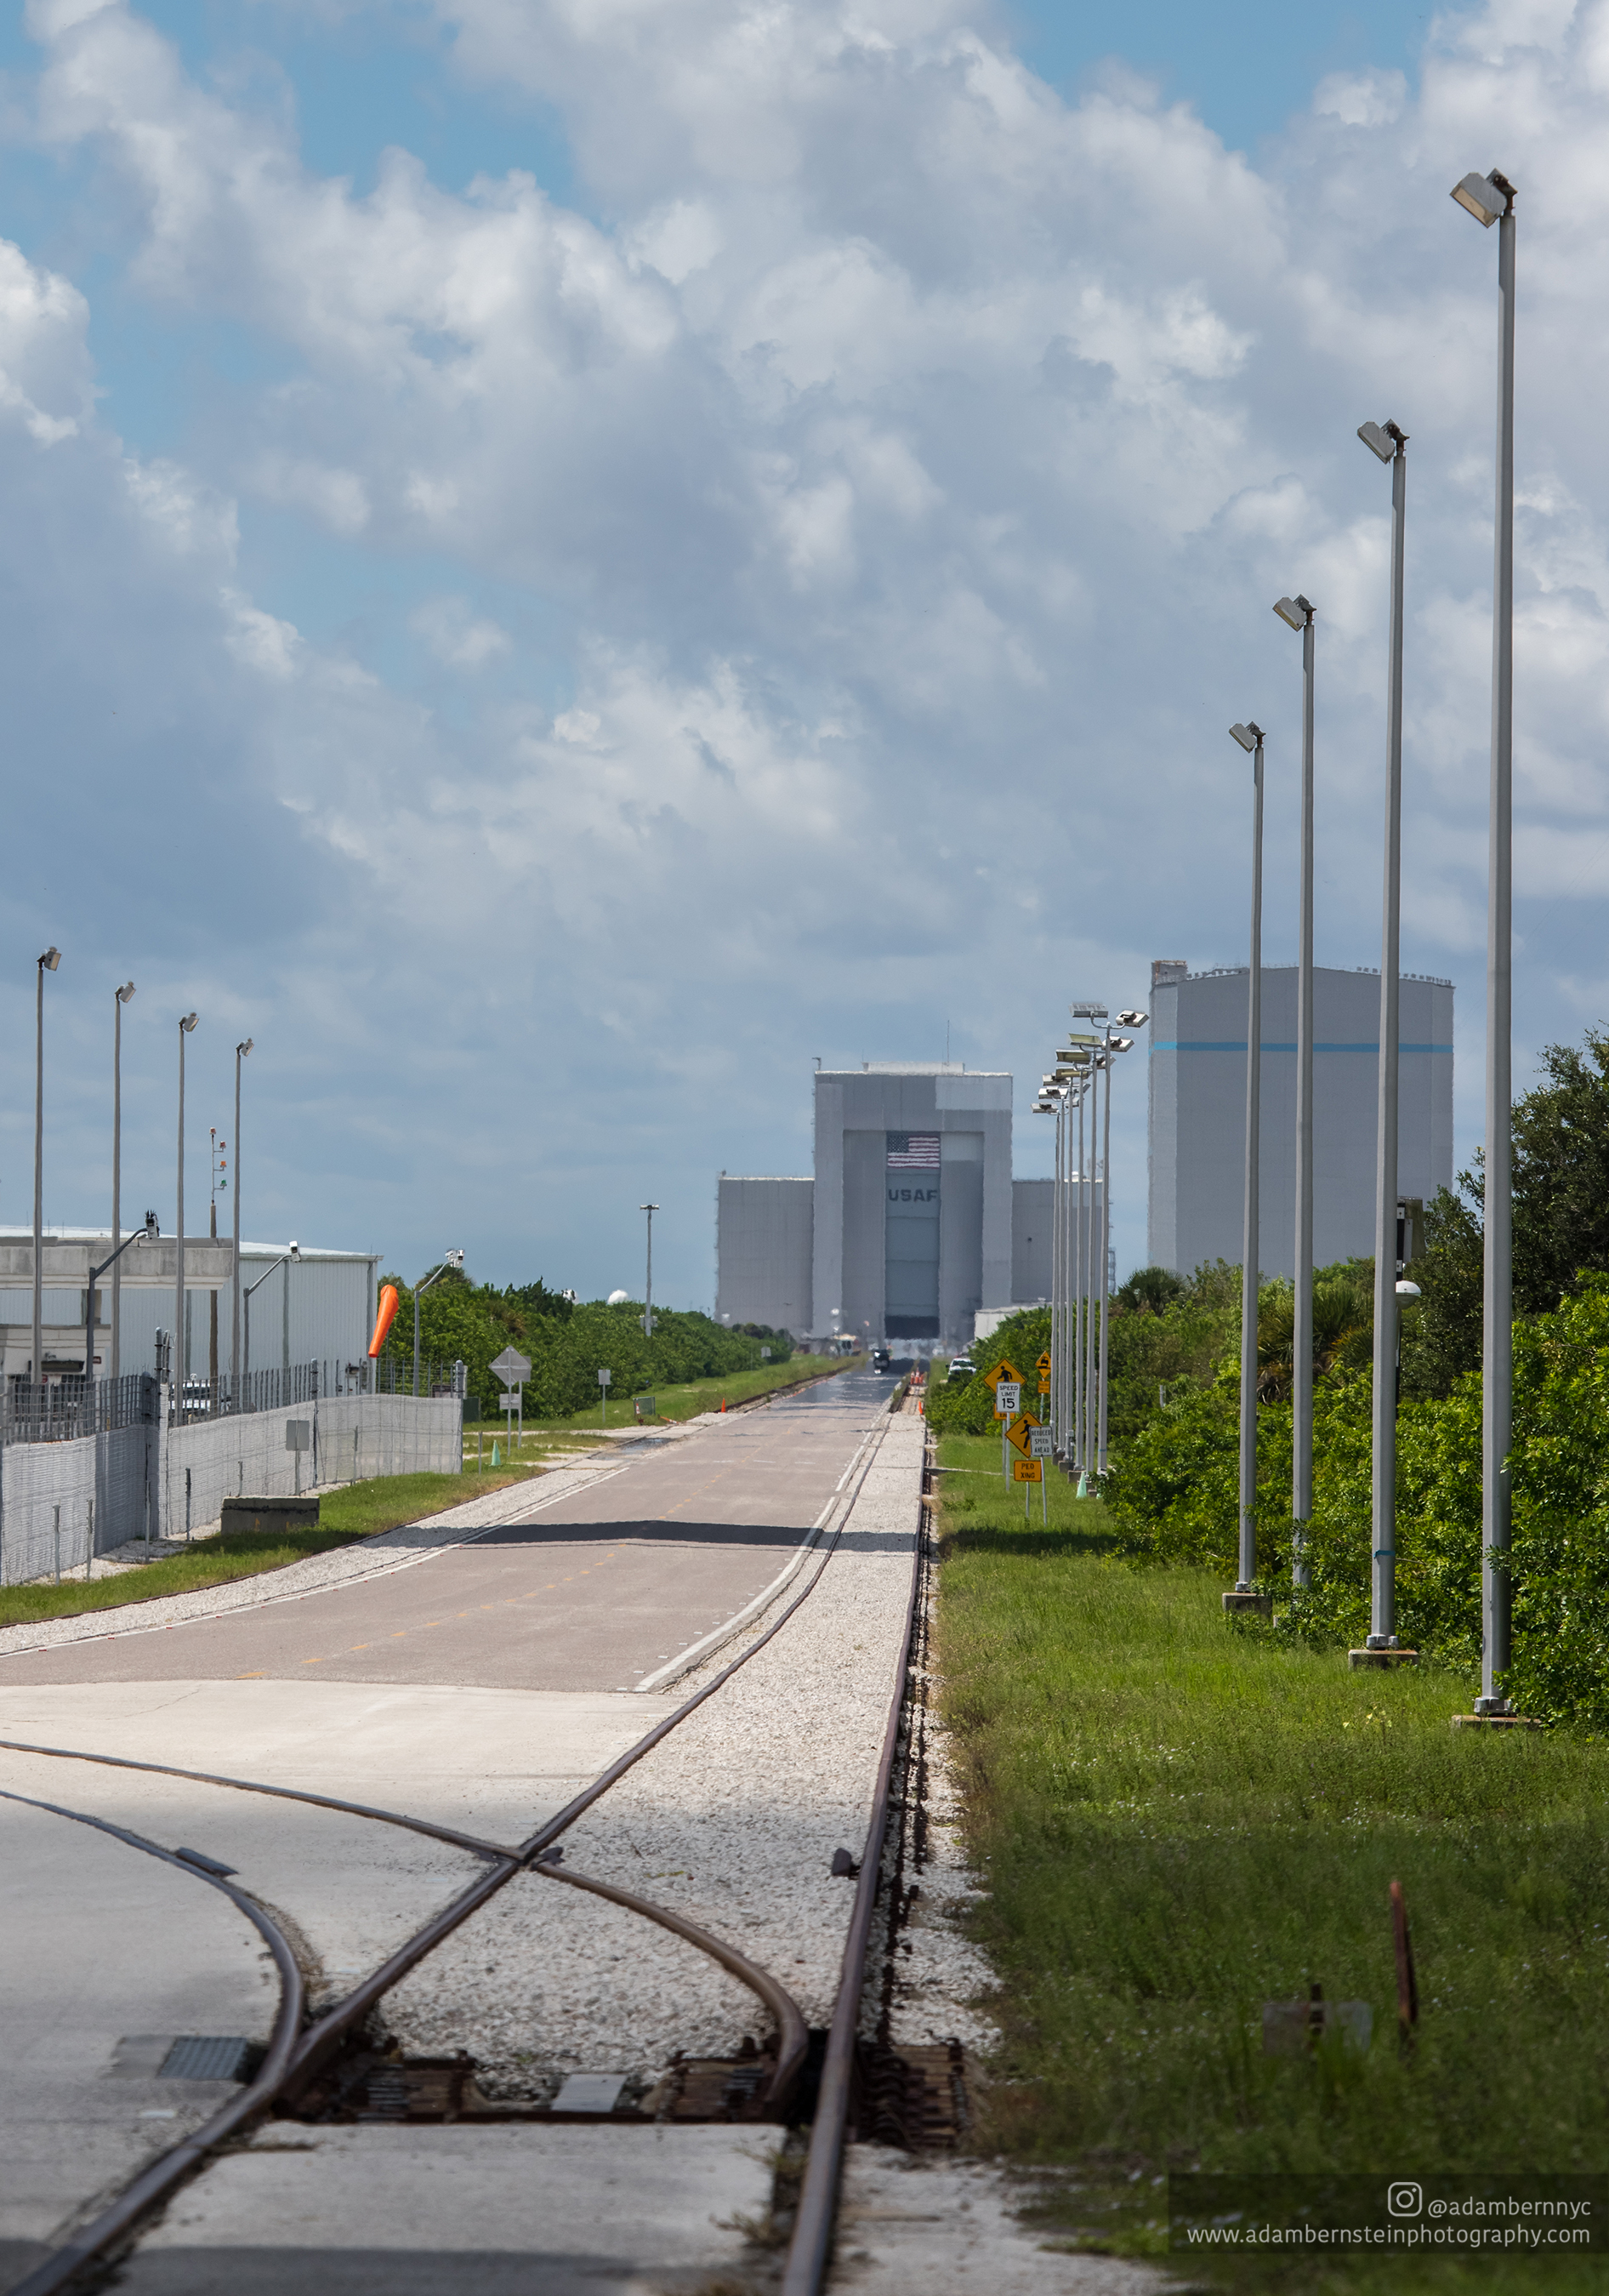 Cape Canaveral Air Force Station's Solid Motor Assembly Building (SMAB) is seen straight down the road from SLC-41.